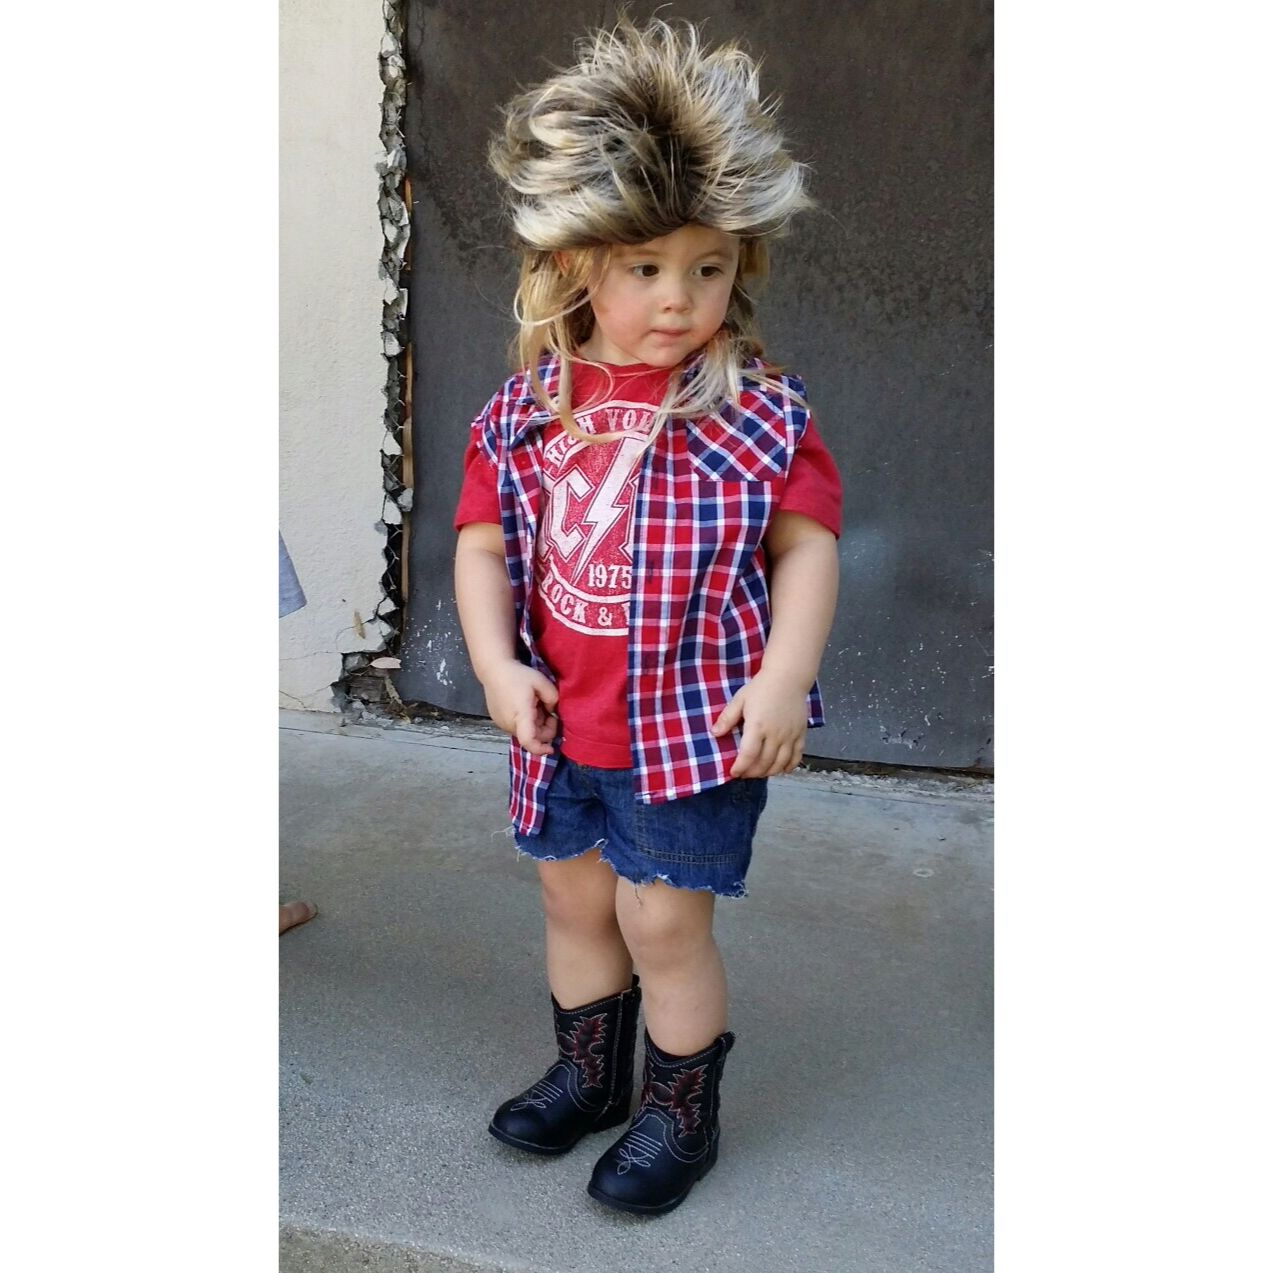 be2c848224d Joe Dirt Halloween Costume for toddlers | Carson in 2019 | Toddler ...